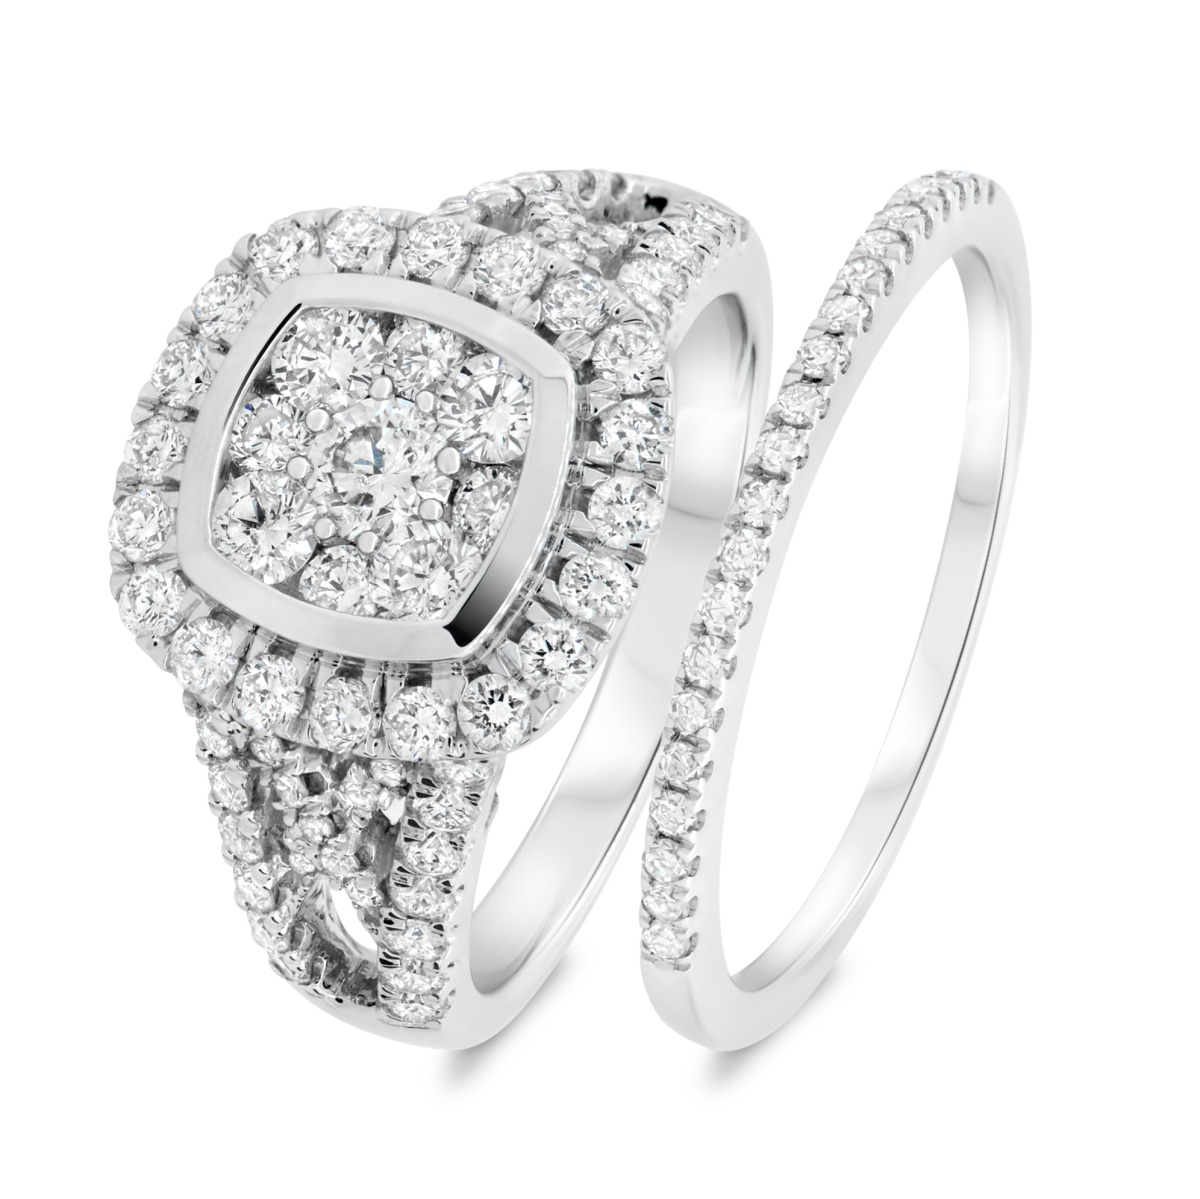 2 1/10 Carat T.W. Diamond Matching Bridal Ring Set 14K White Gold